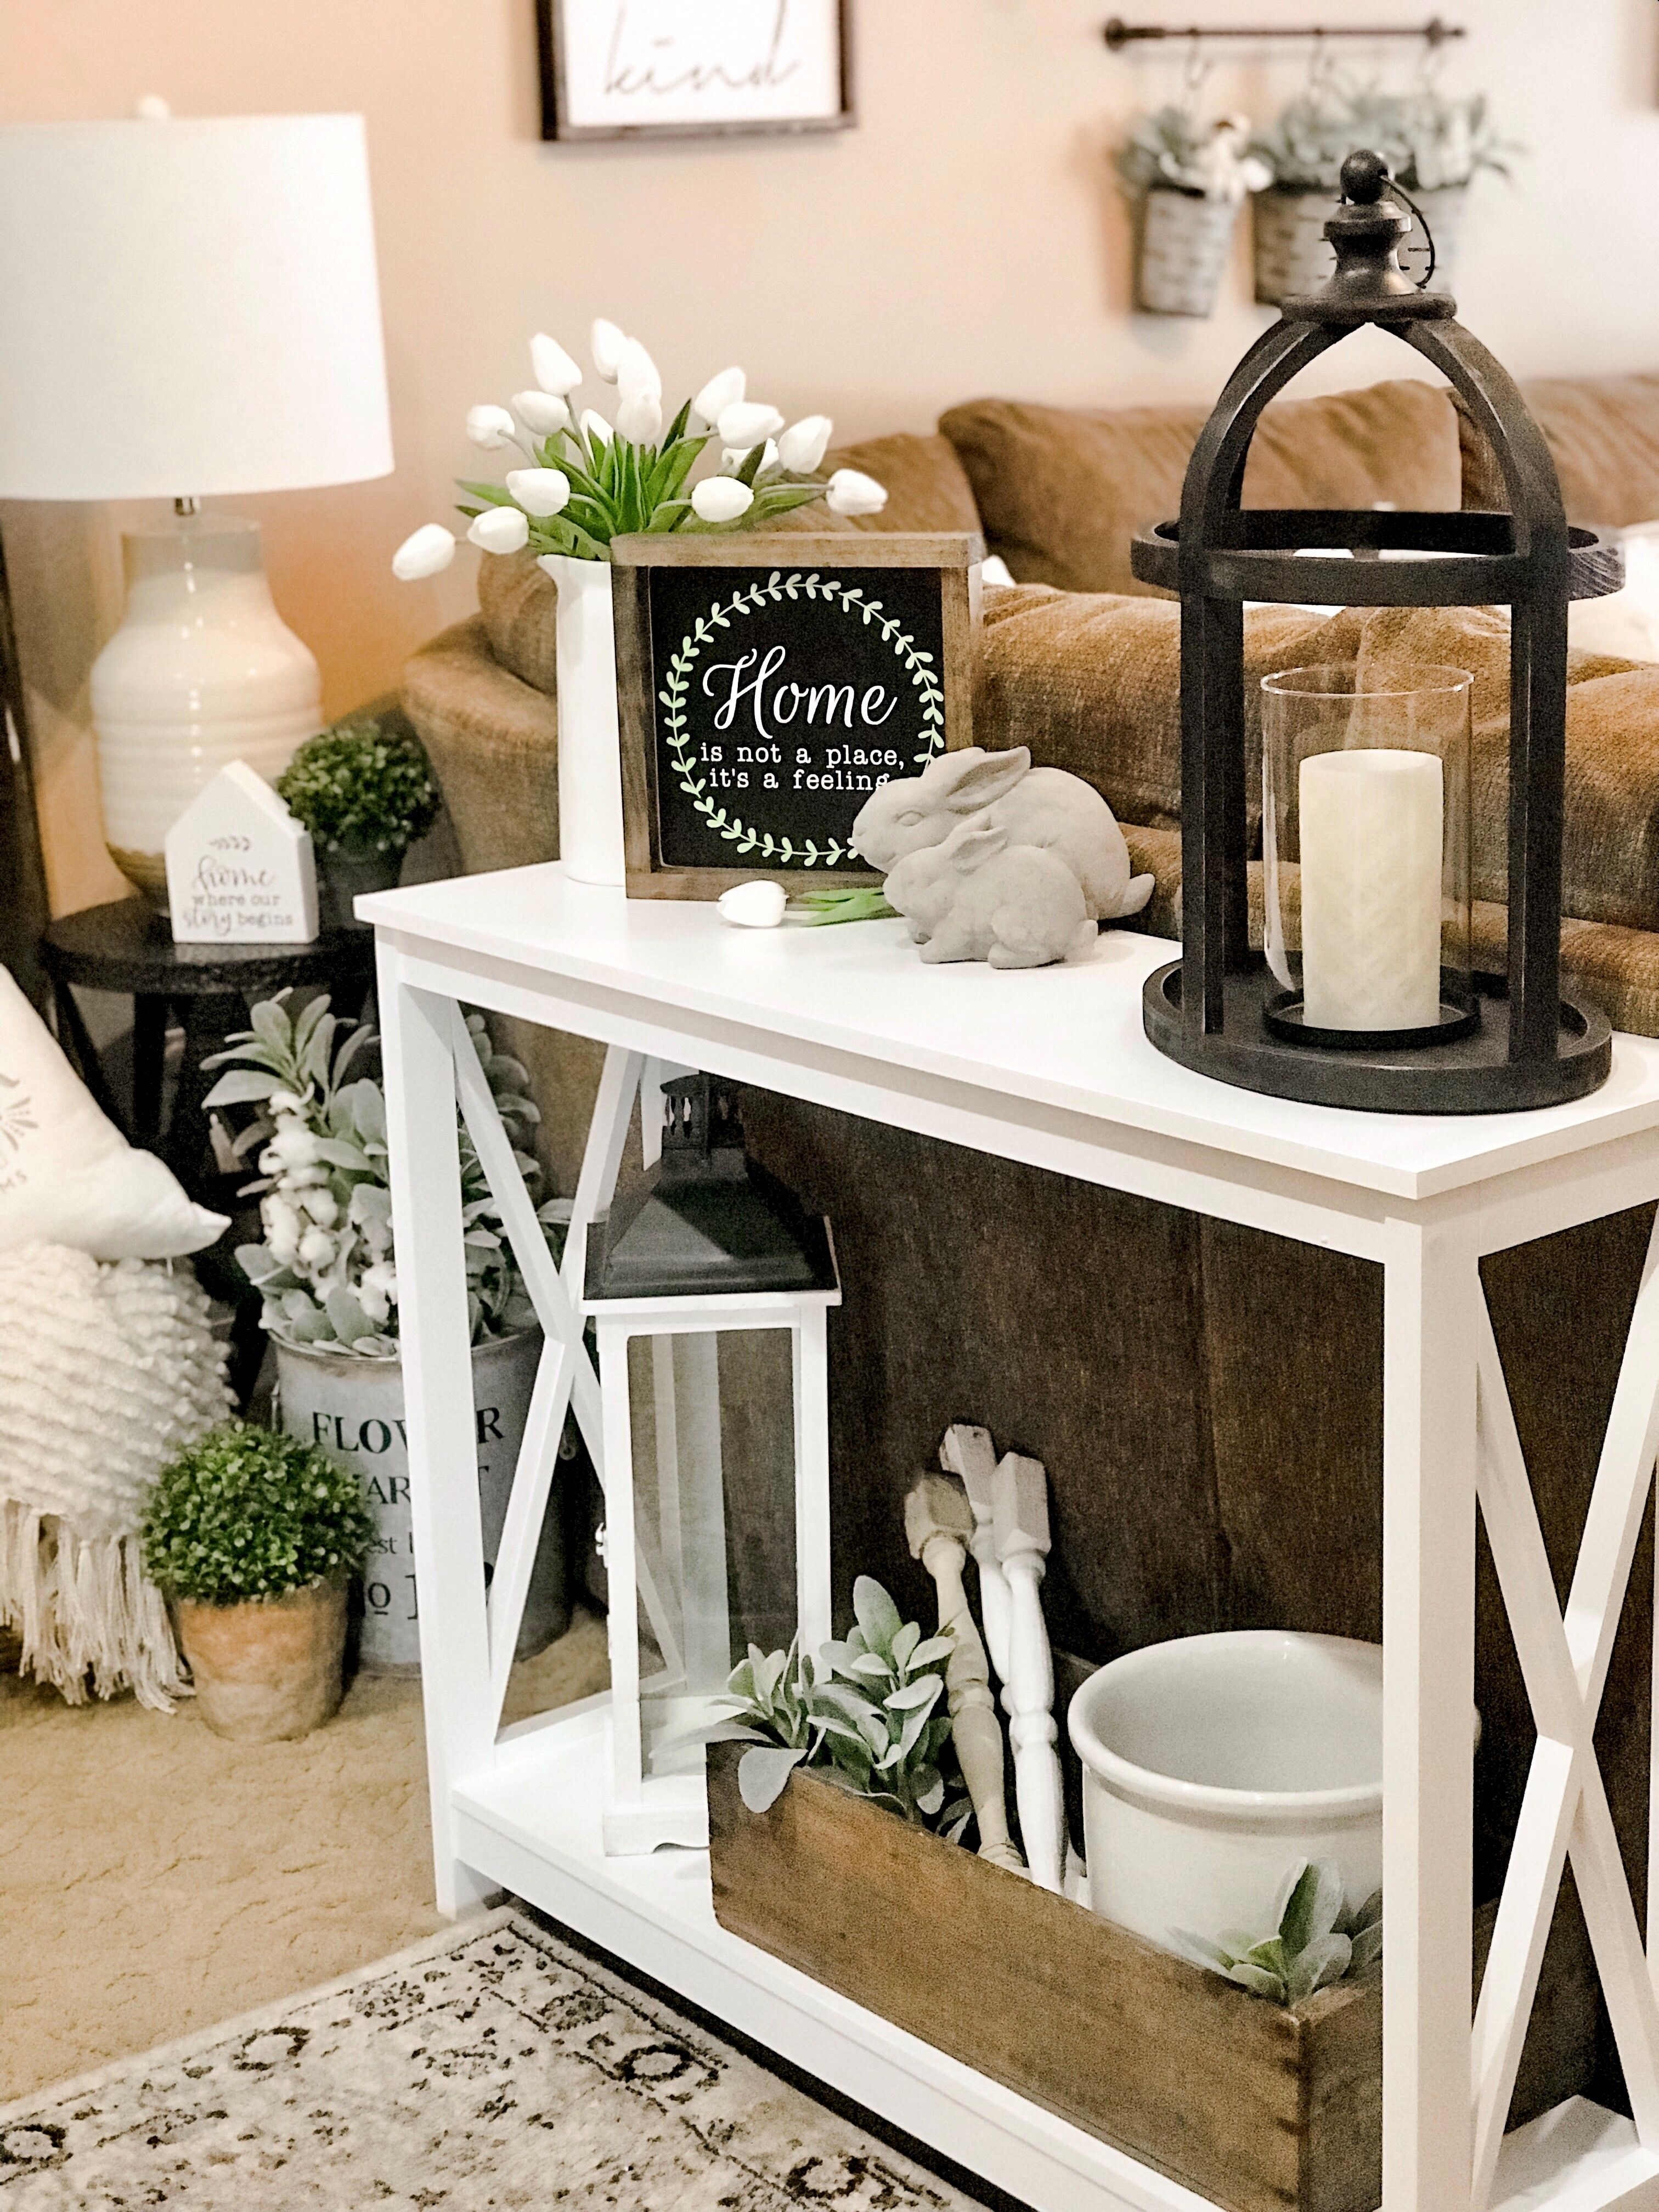 Console Tables Are Perfect For Showcasing Your Lanterns And Home Decor Thanks For The Inspo Farm To Table Cre Country House Decor Sofa Table Decor Home Decor